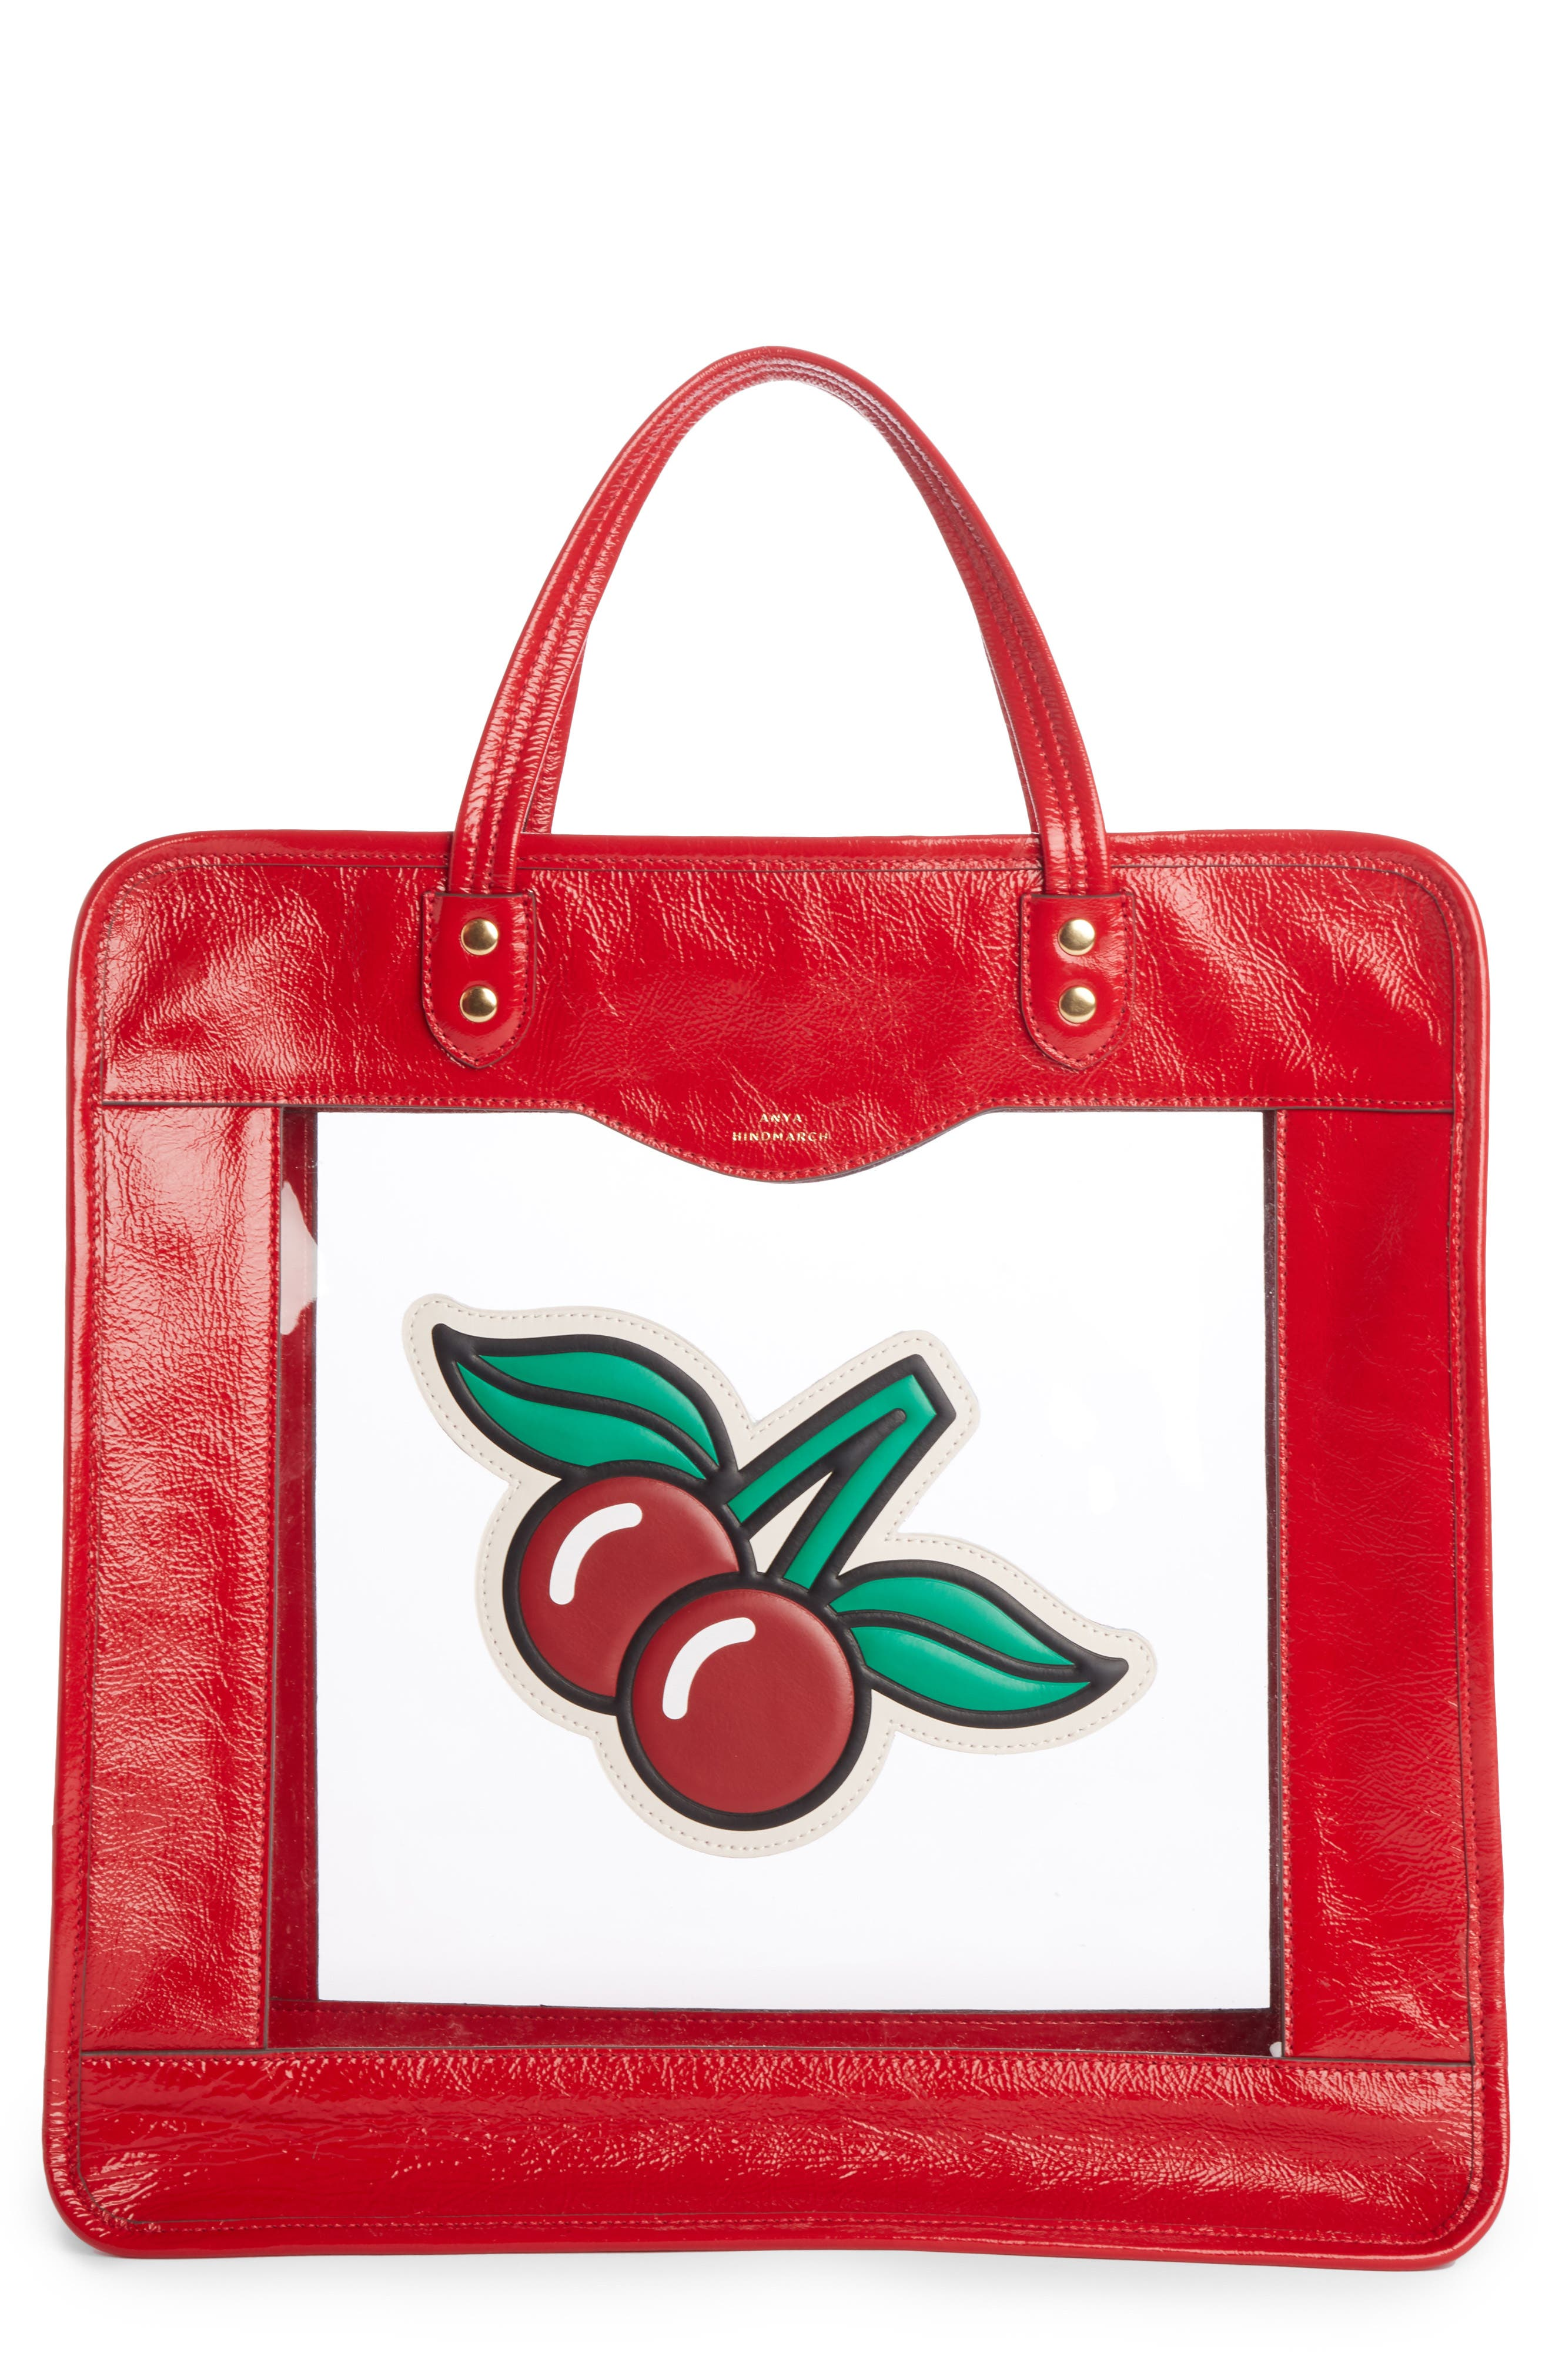 Rainy Day Cherries Tote,                             Main thumbnail 1, color,                             Red